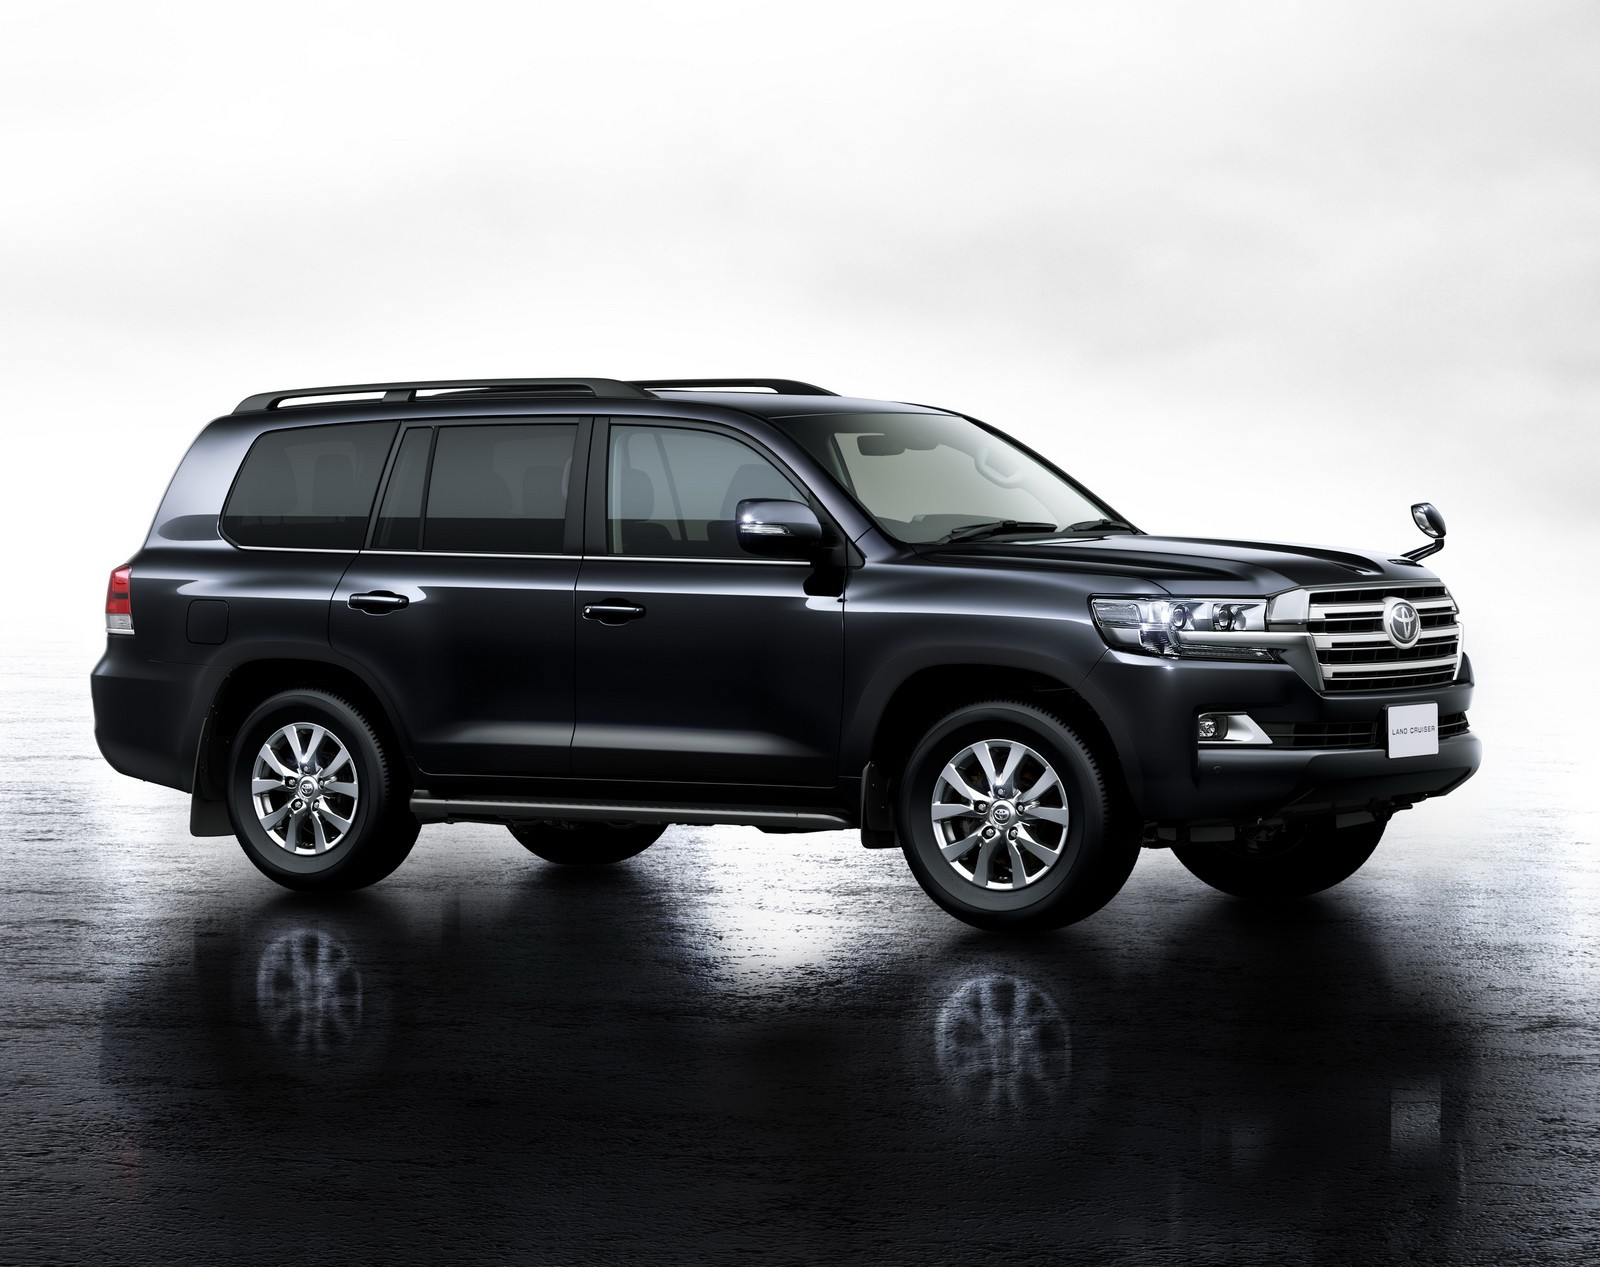 toyota land cruiser 200 facelift launches in japan puts. Black Bedroom Furniture Sets. Home Design Ideas